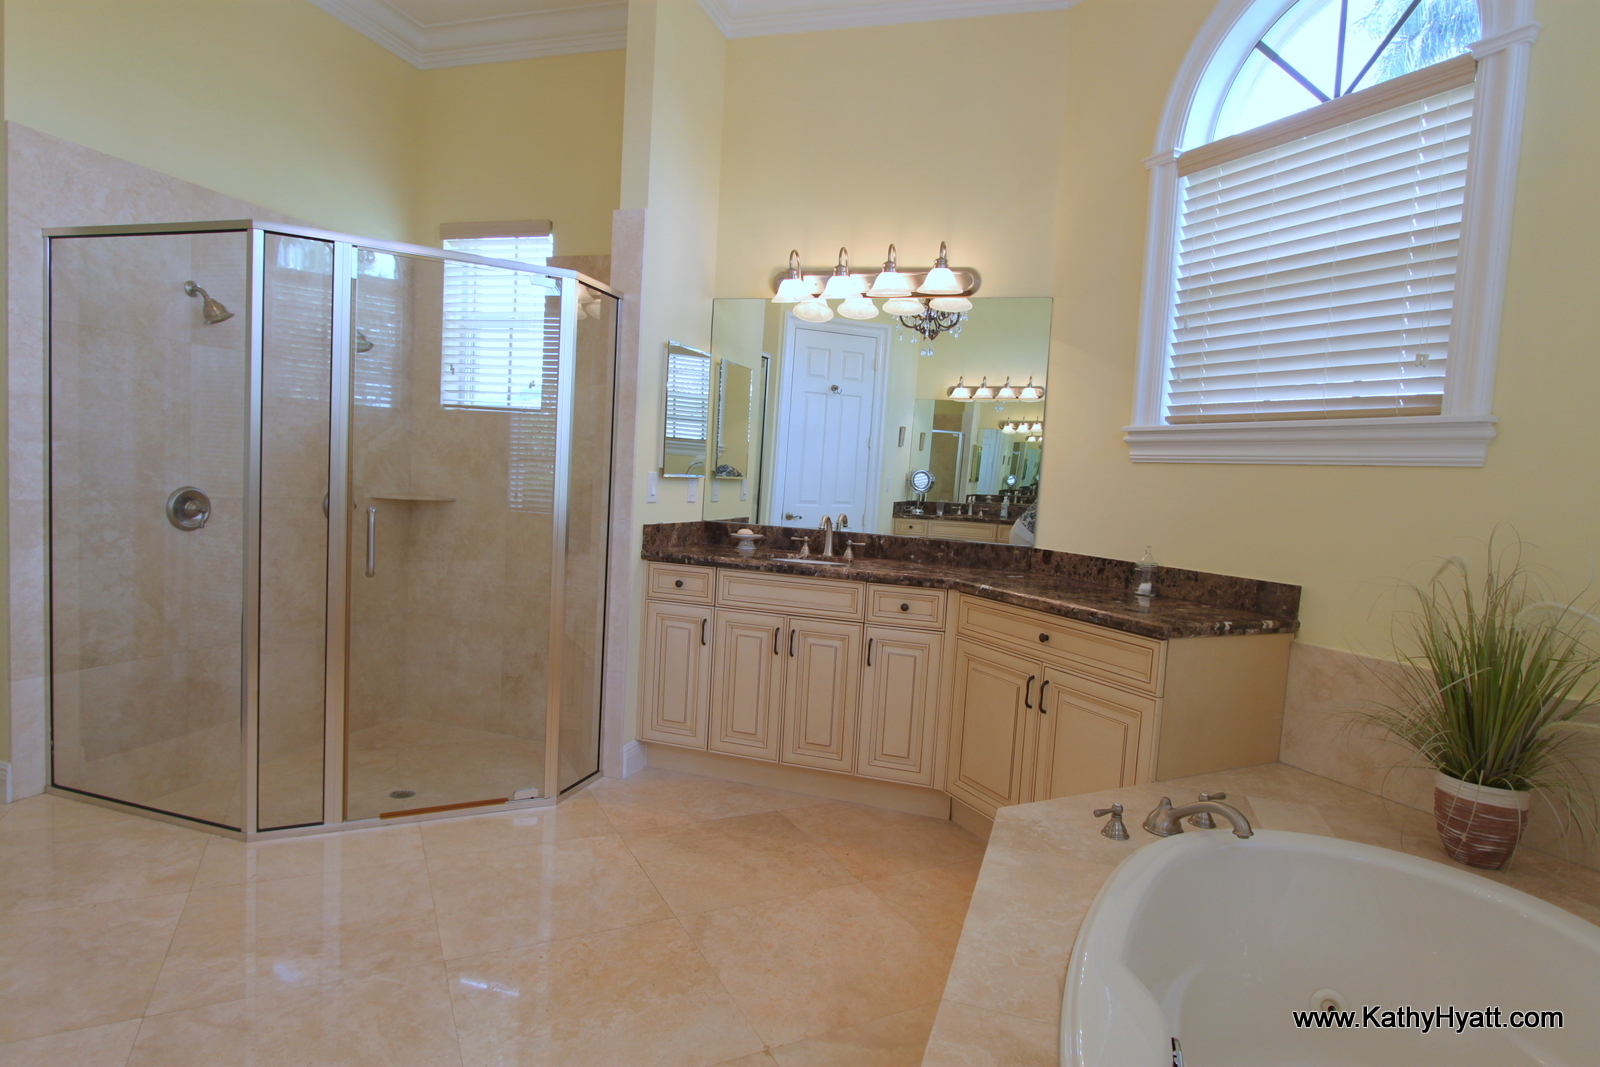 doors for bedrooms 11460 n w 21 court plantation fl 33323 11460